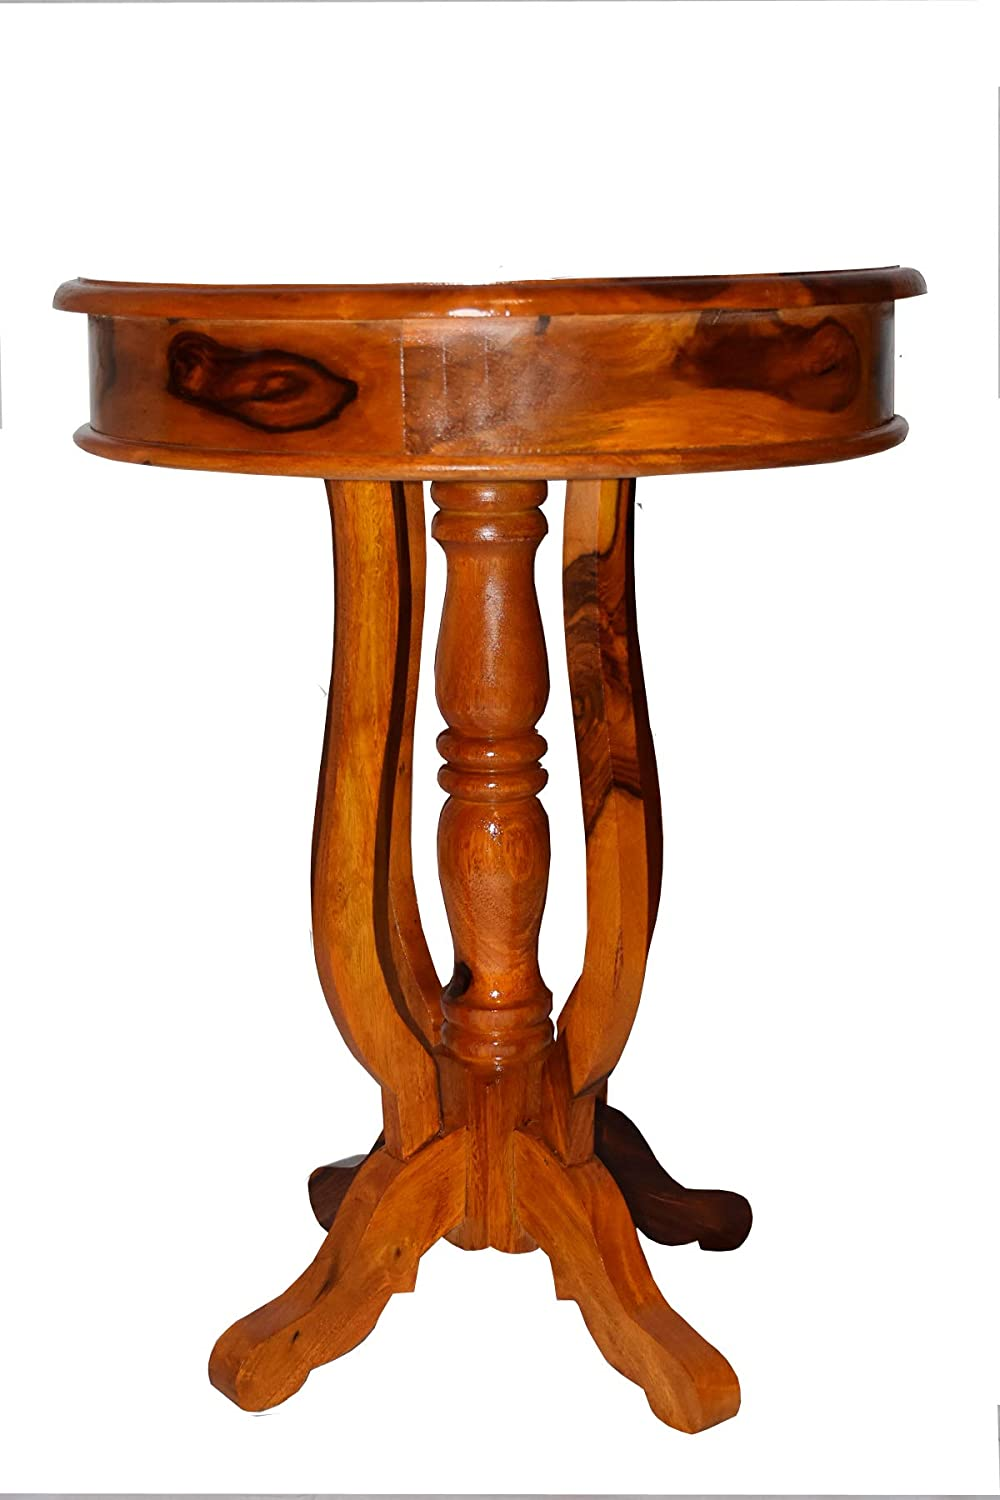 BG Furniture Sheeham Wood Round Bed Side End Table for Bed Room (Natural Teak)